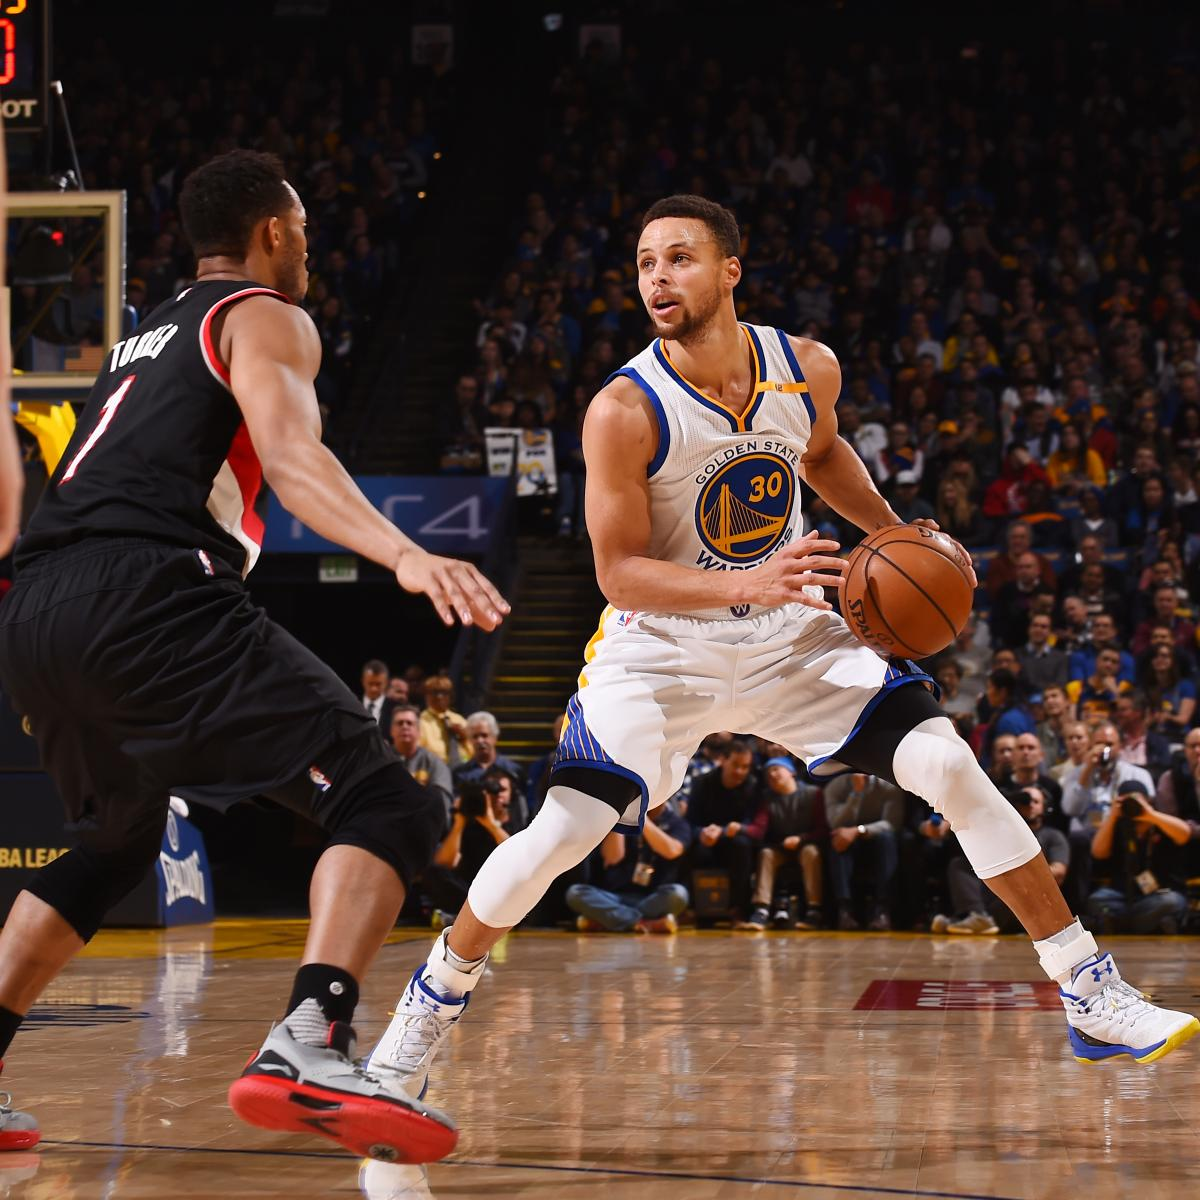 Portland Blazers Last Game: Trail Blazers Vs. Warriors: Score, Highlights, Reaction